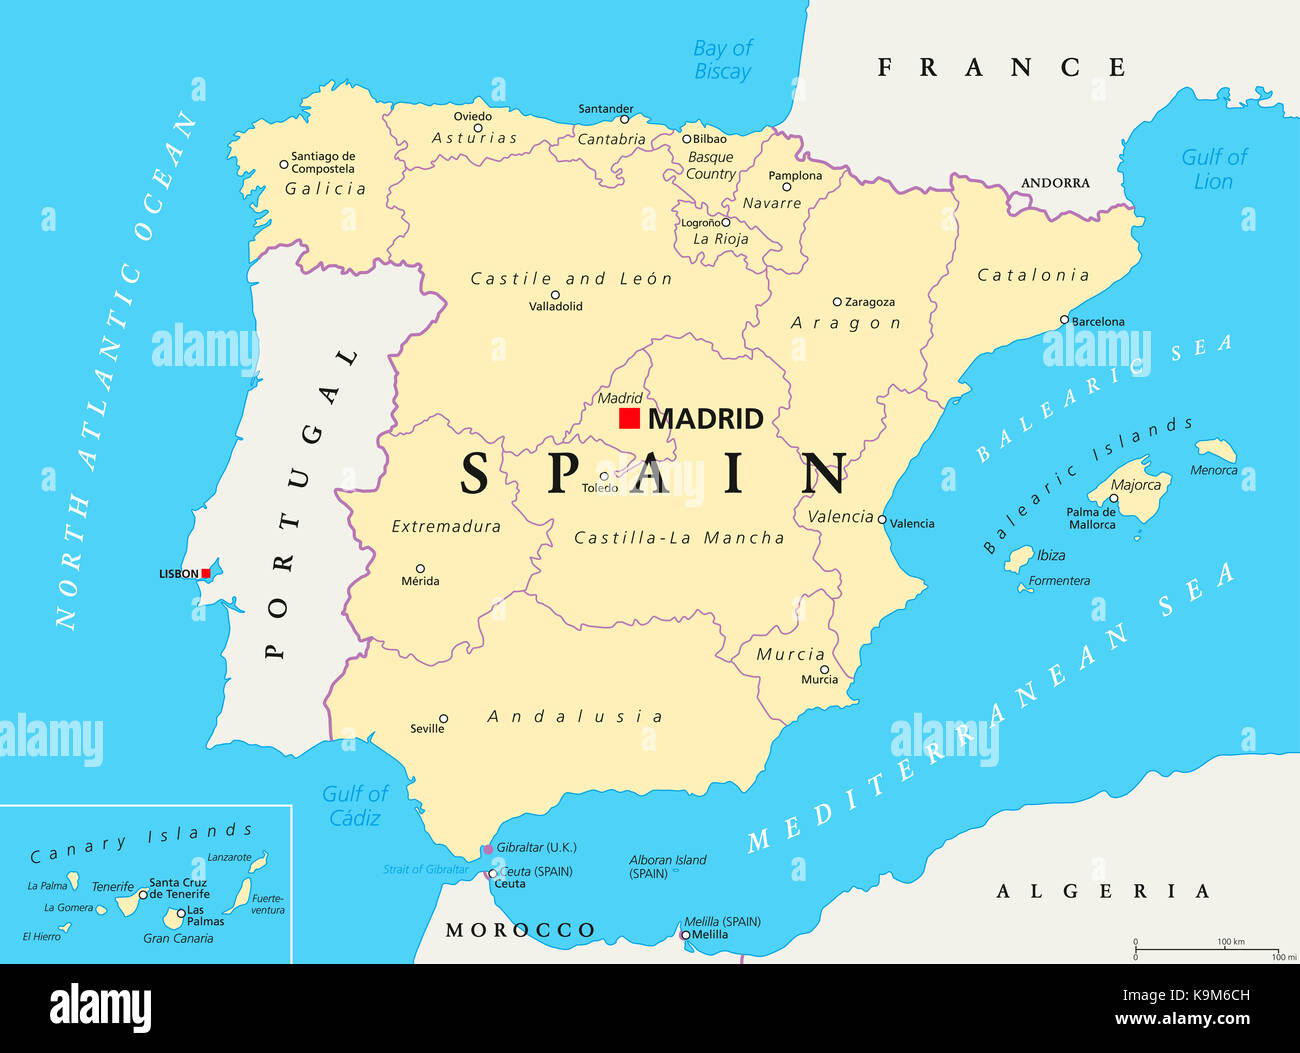 Spain Map Of Provinces.Spain Administrative Divisions Political Map Autonomous Communities